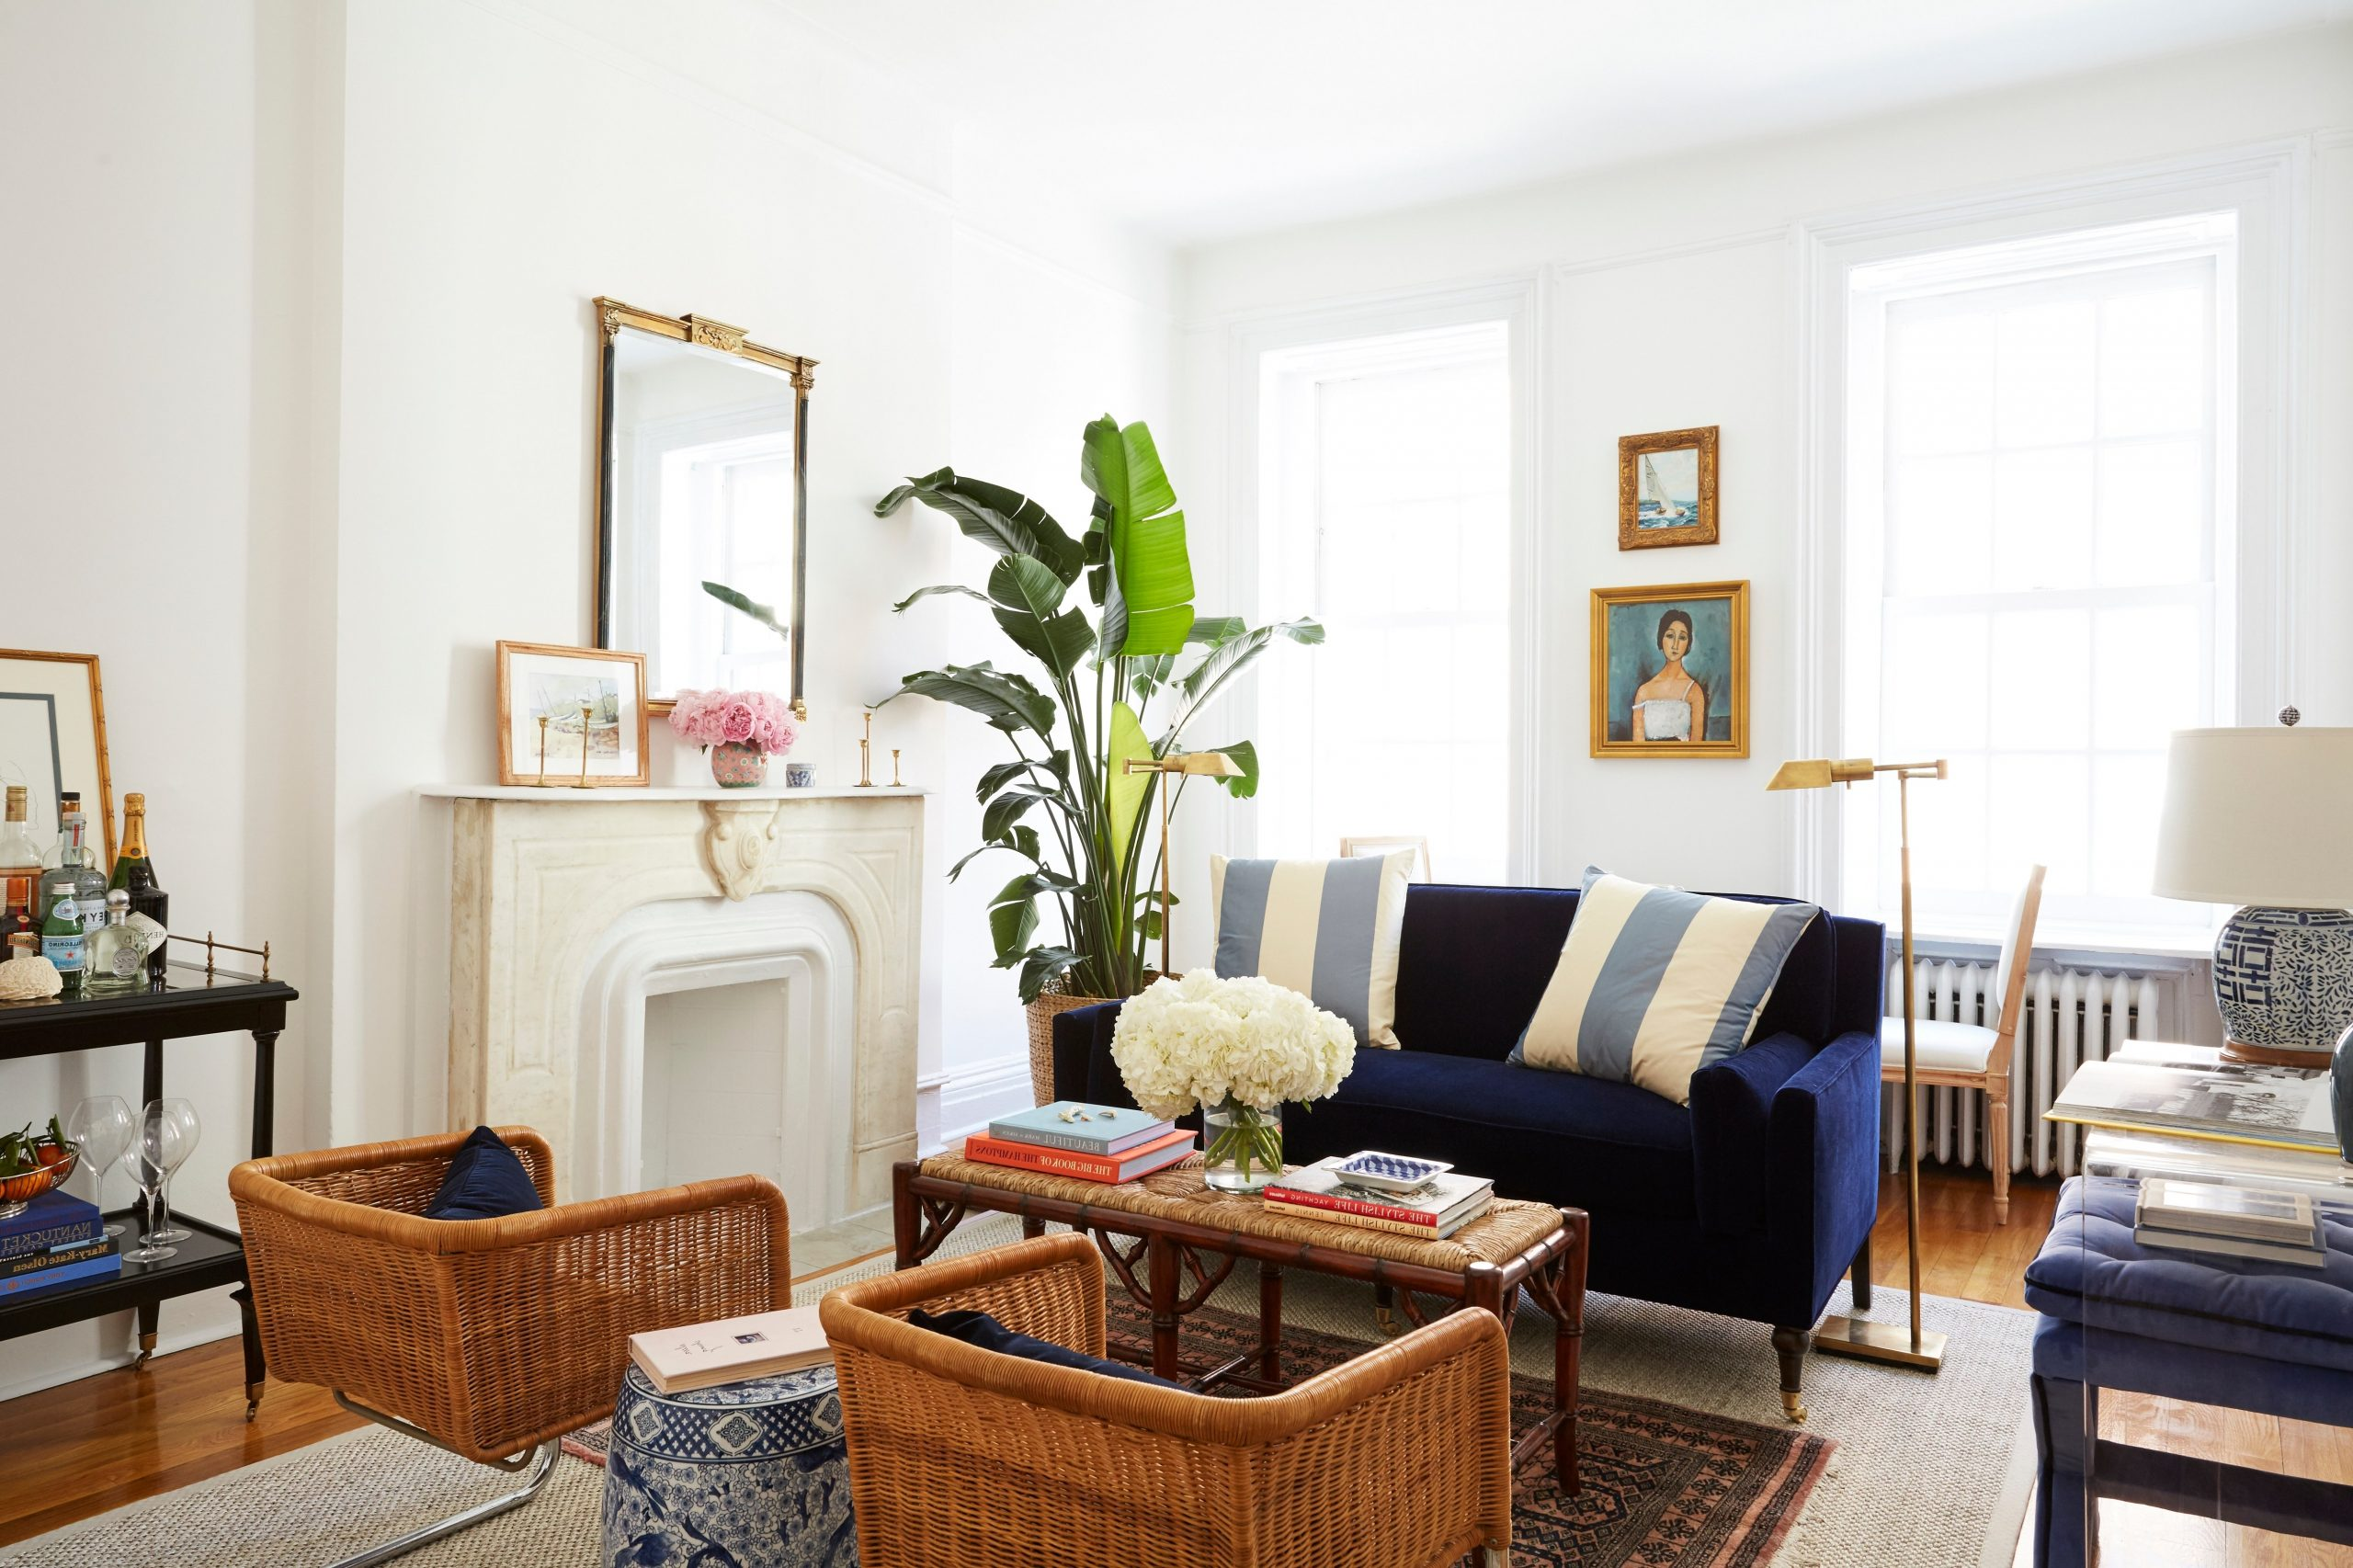 8 Small Living Room Ideas That Will Maximize Your Space 30+ Decorating An Awkward Living Room Ideas